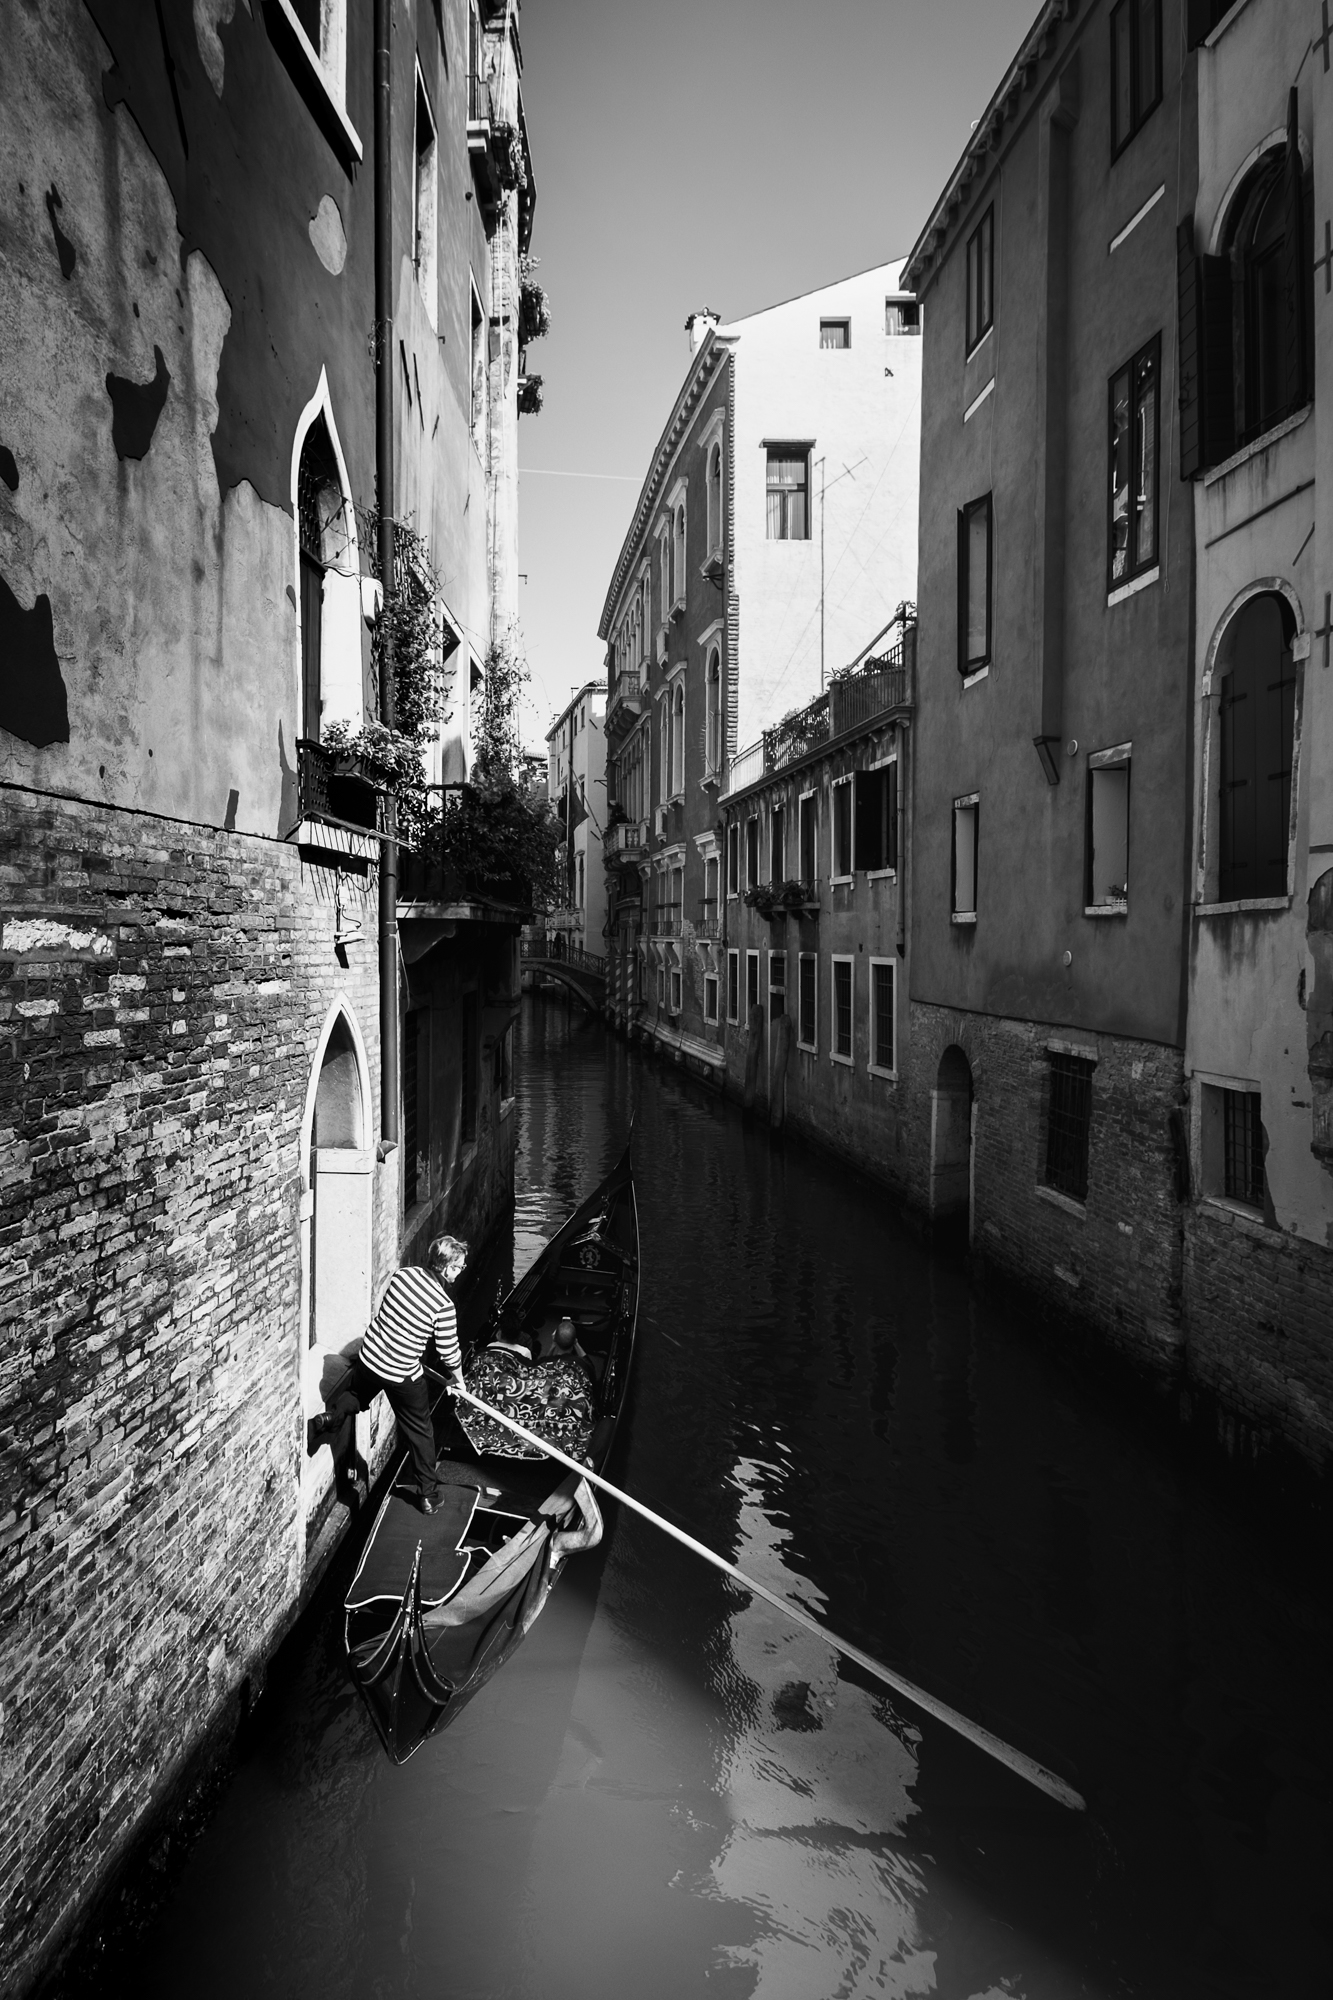 A photo of a Gondolier on the canal in Venice taken by Trevor Sherwin